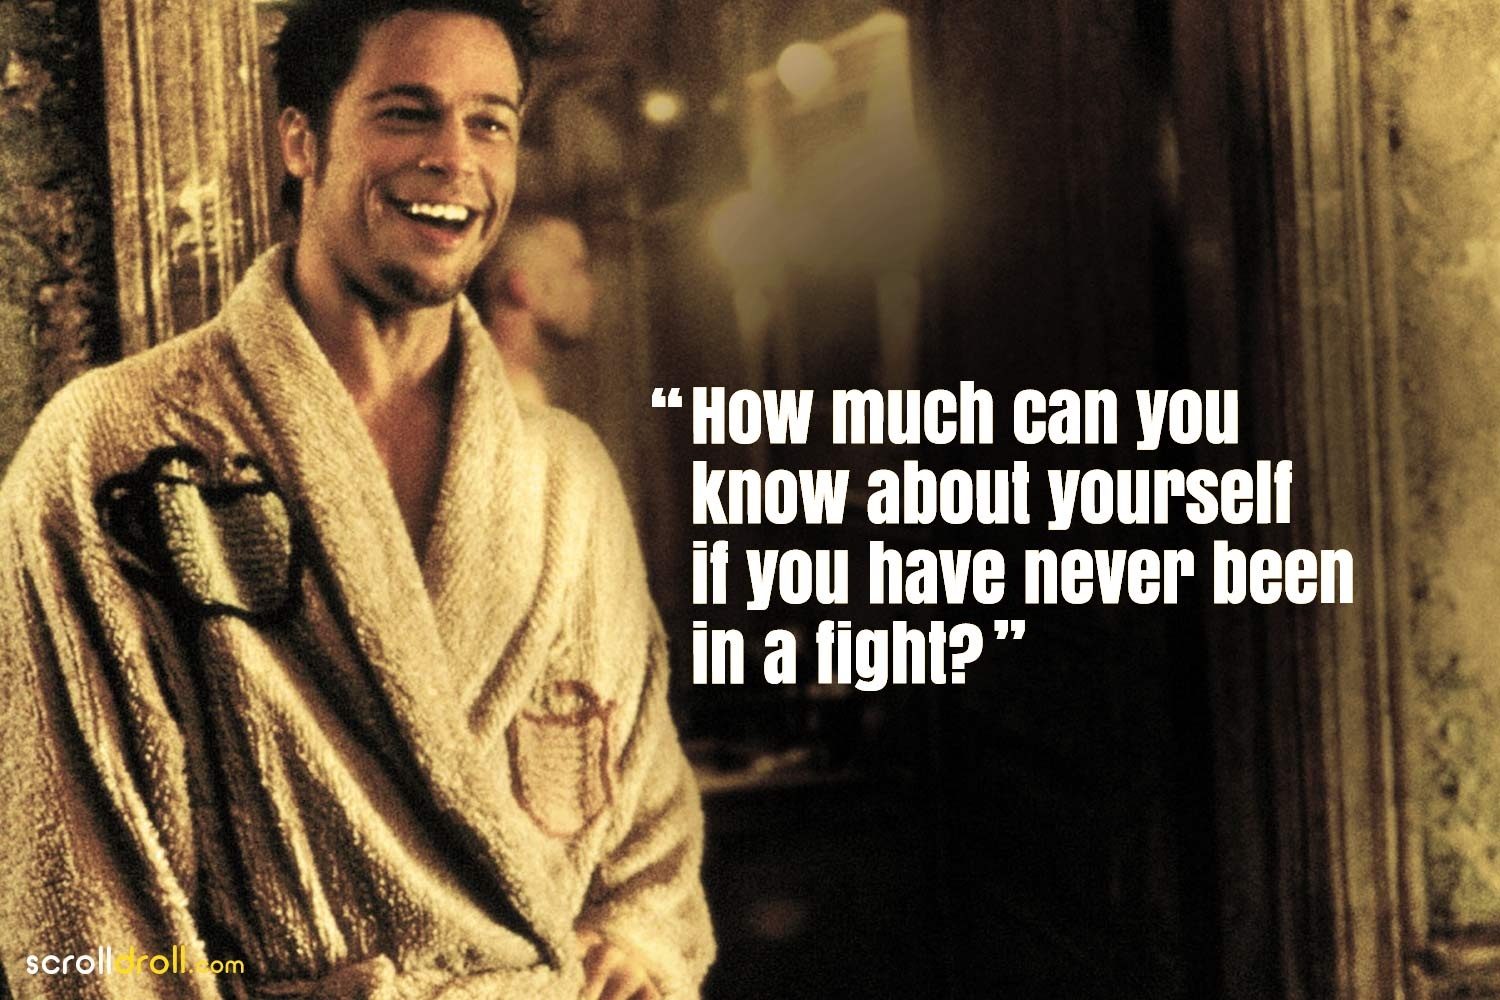 Fight Club Quotes-How much can you know about yourself if you have never been in a fight?